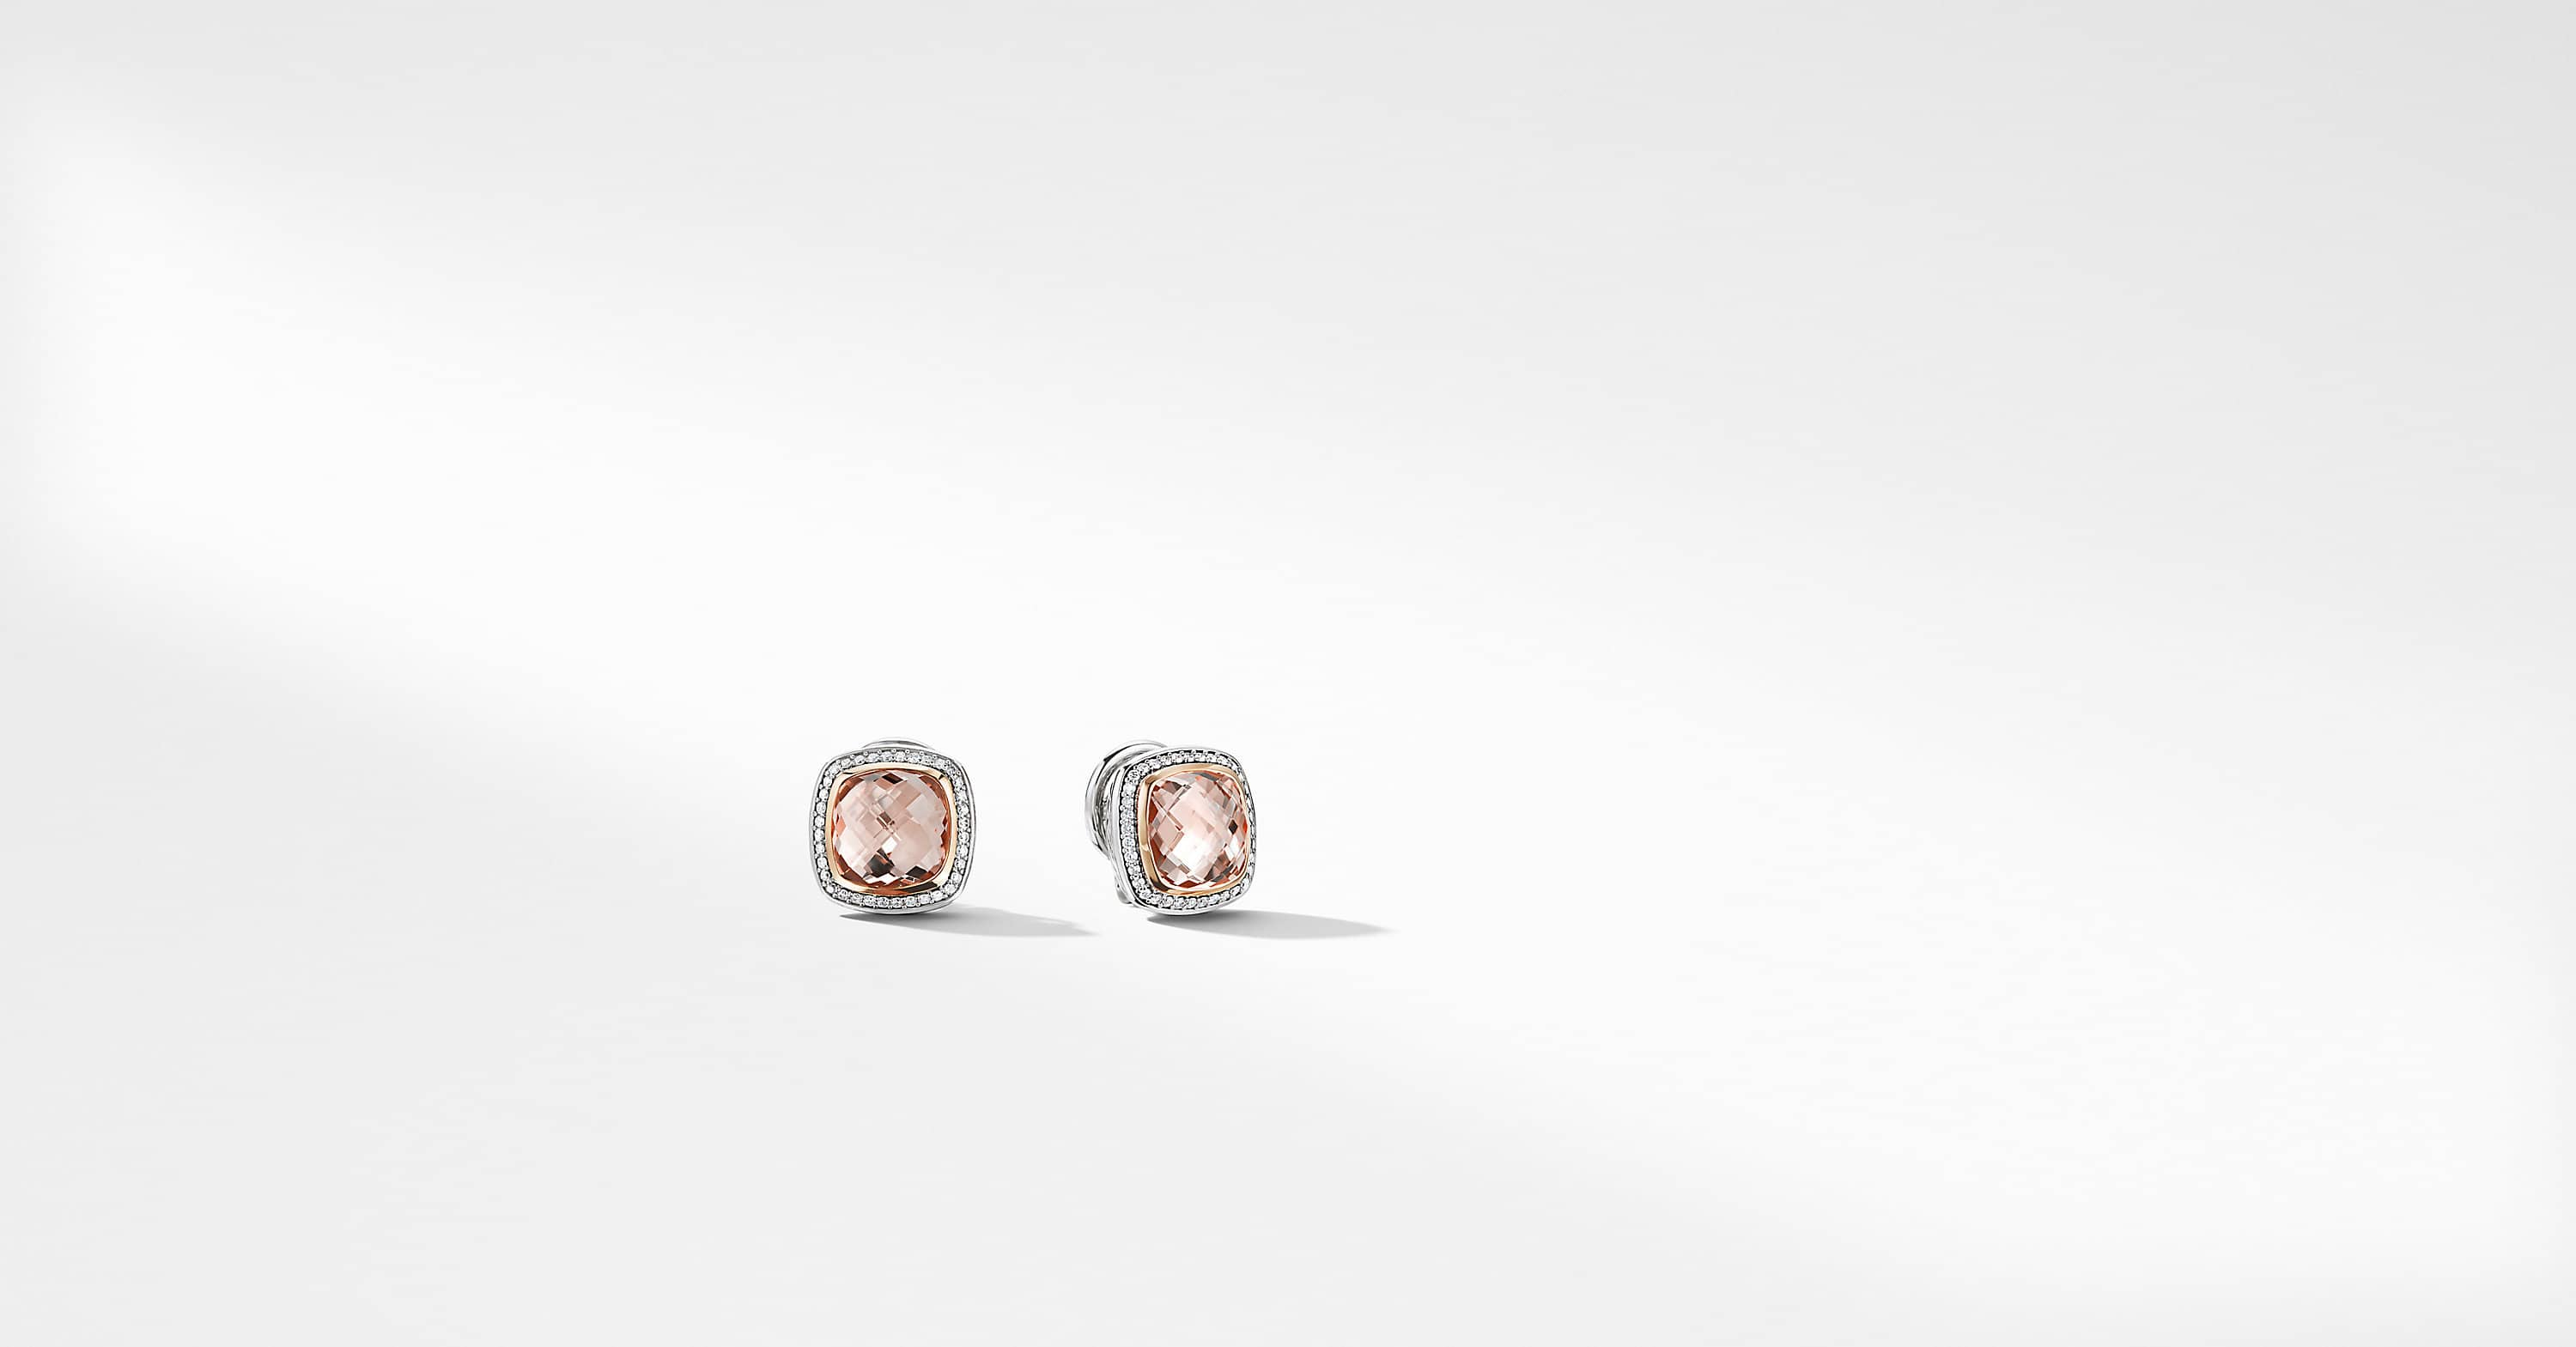 Albion Earrings with 18K Rose Gold, 11mm